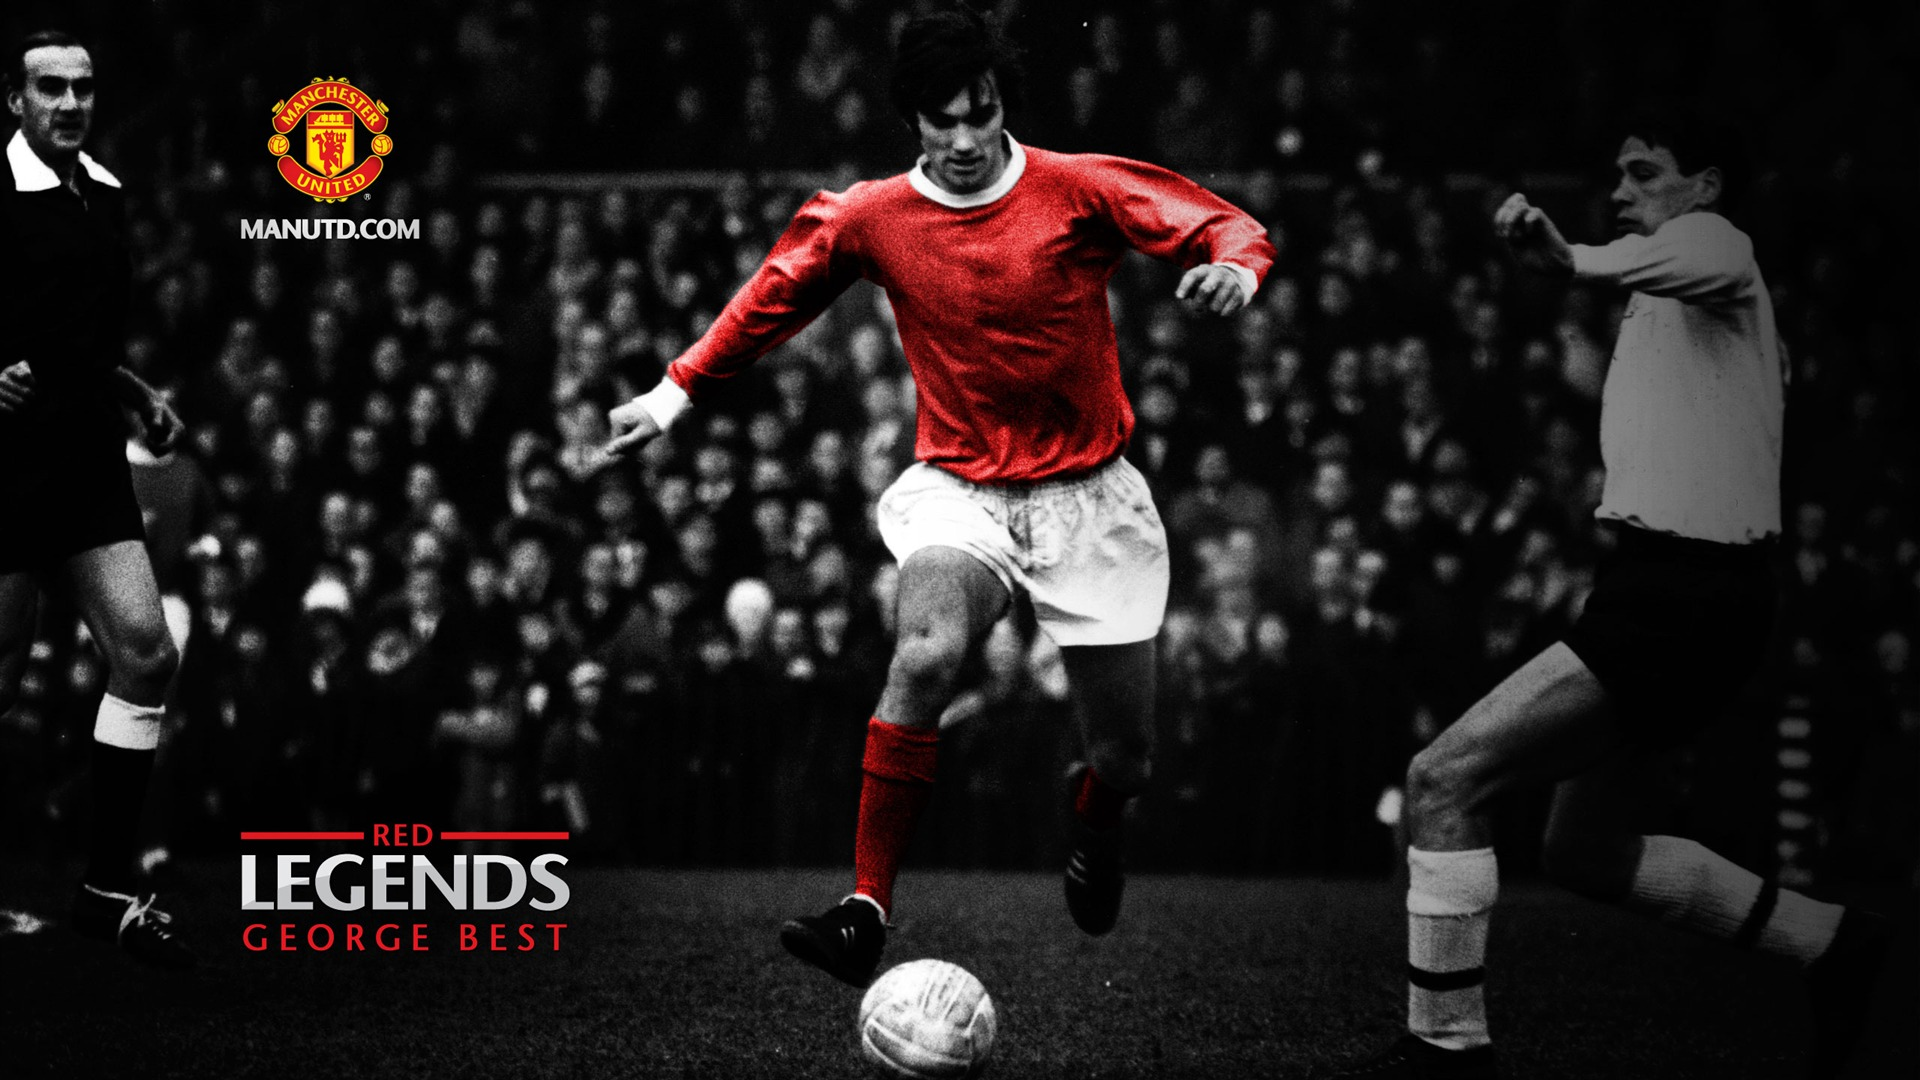 Mark's, manchester city are one of the most successful clubs in english football. George Best-Red Legends-Manchester United wallpaper